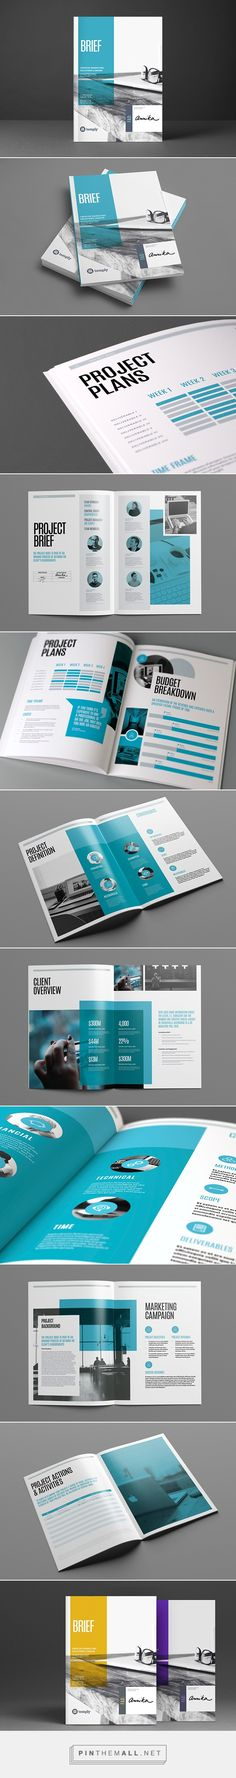 Brief Editorial Design, Graphic Design, Print Design - created via http://pinthemall.net